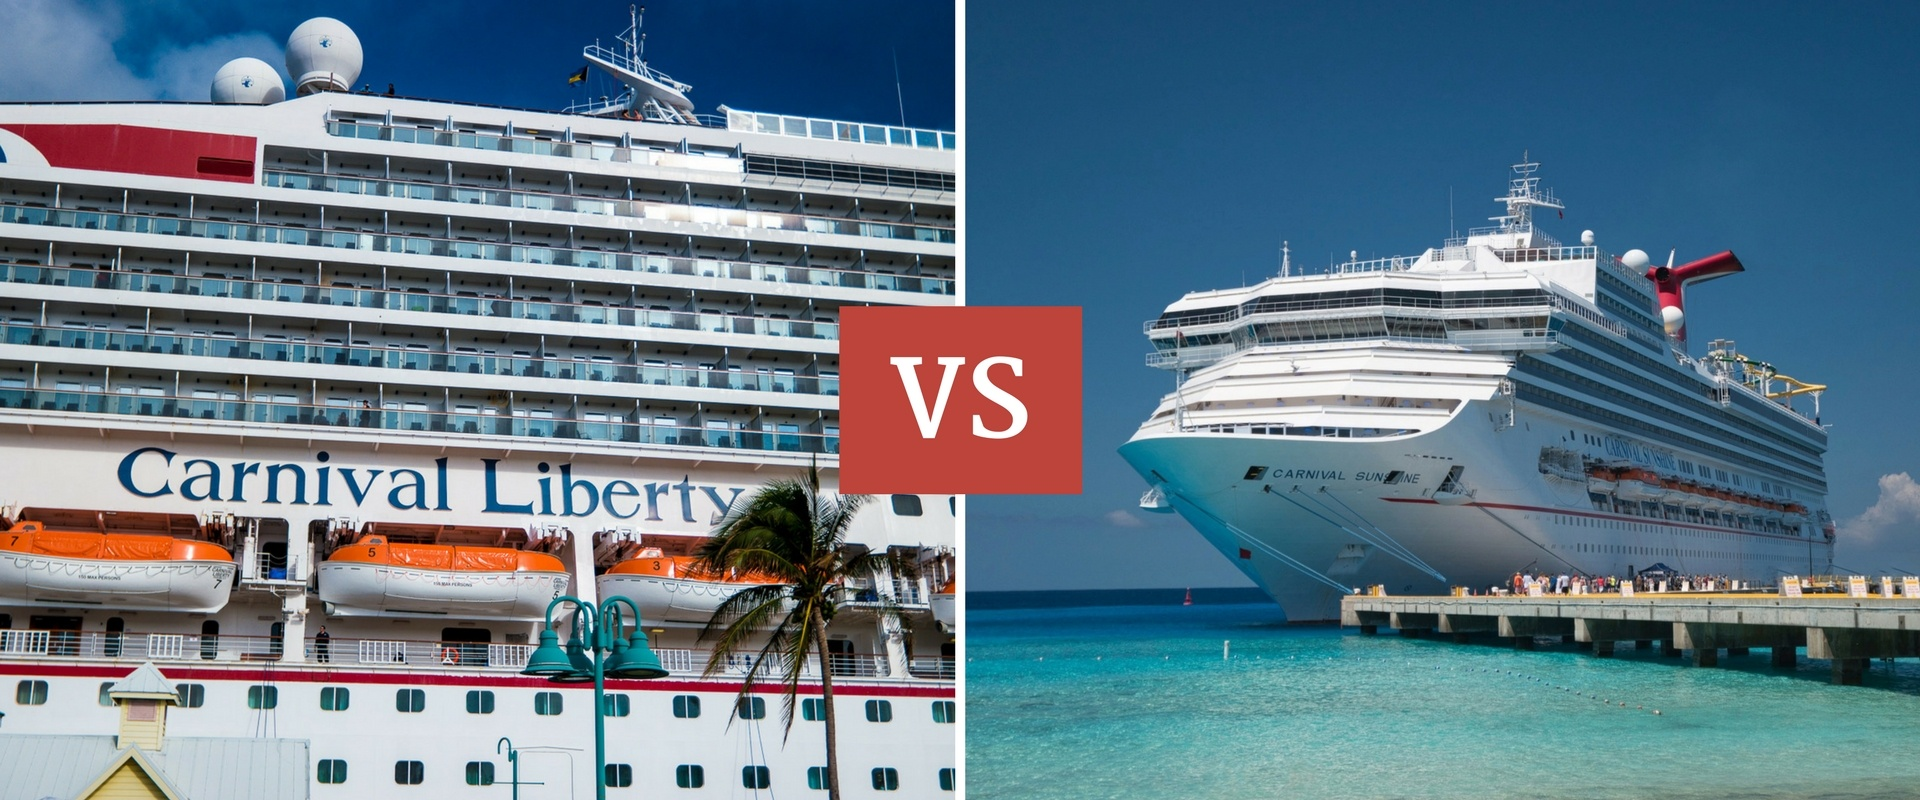 Carnival Sunshine vs Carnival Liberty – Which is better for family travel?